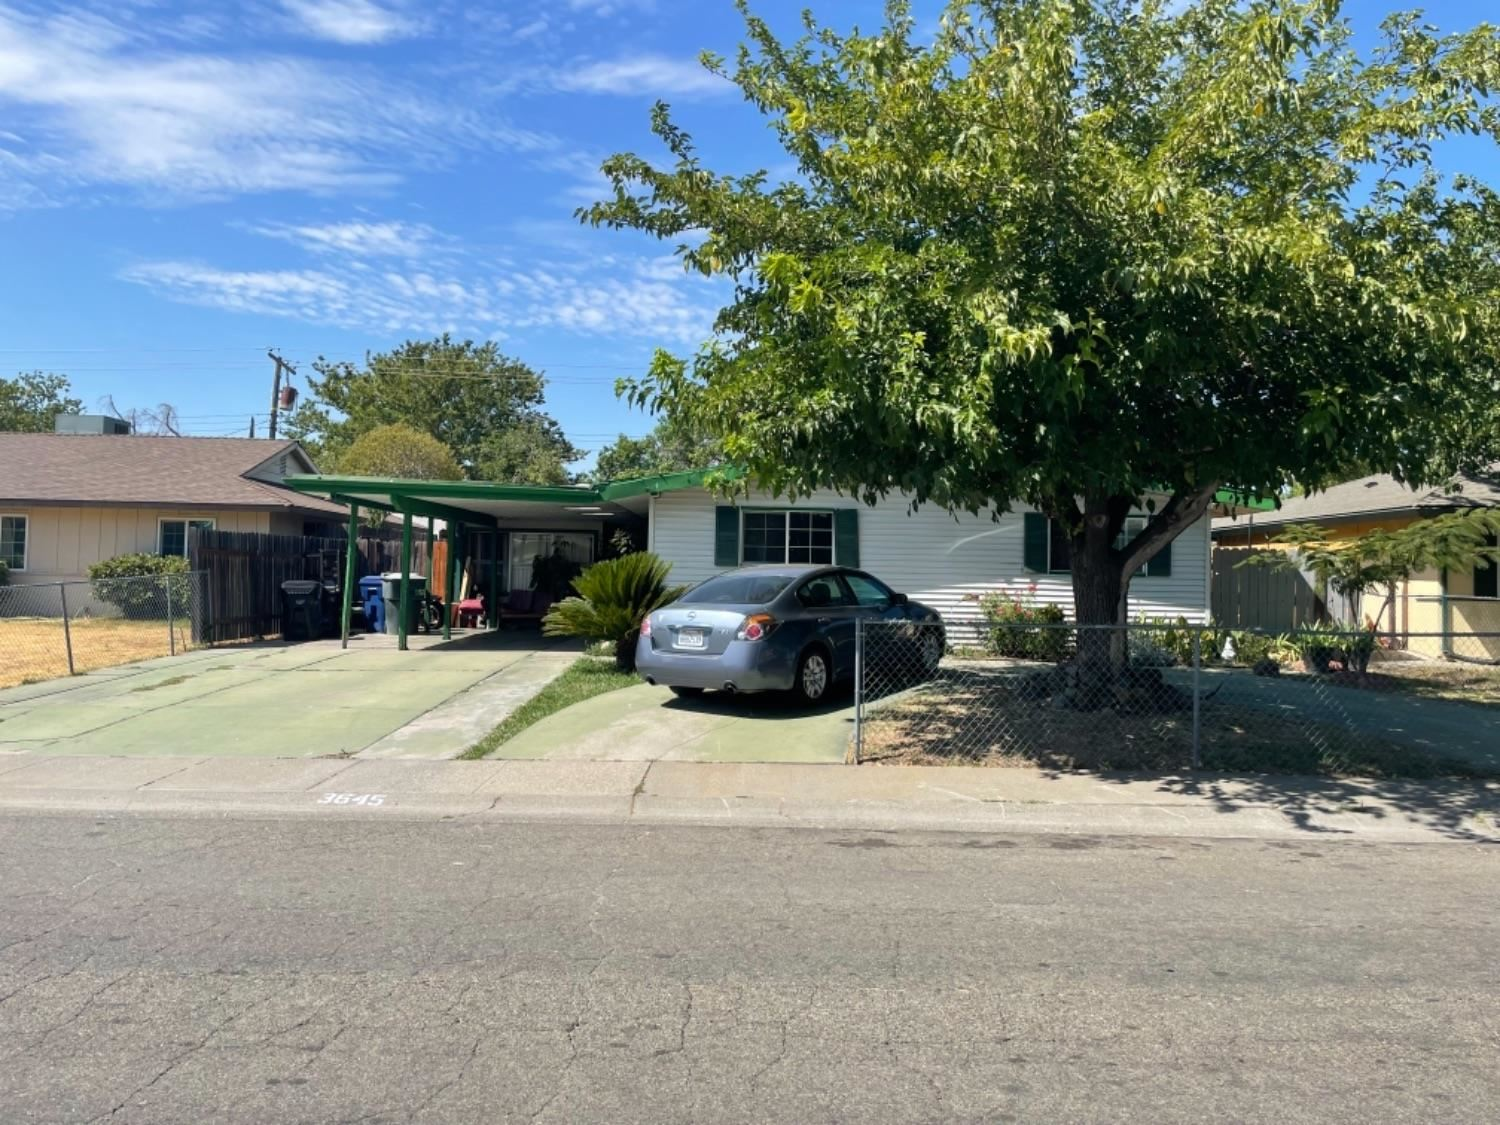 3645 Plymouth Dr, North Highlands, CA 95660 - MLS#: 221092388